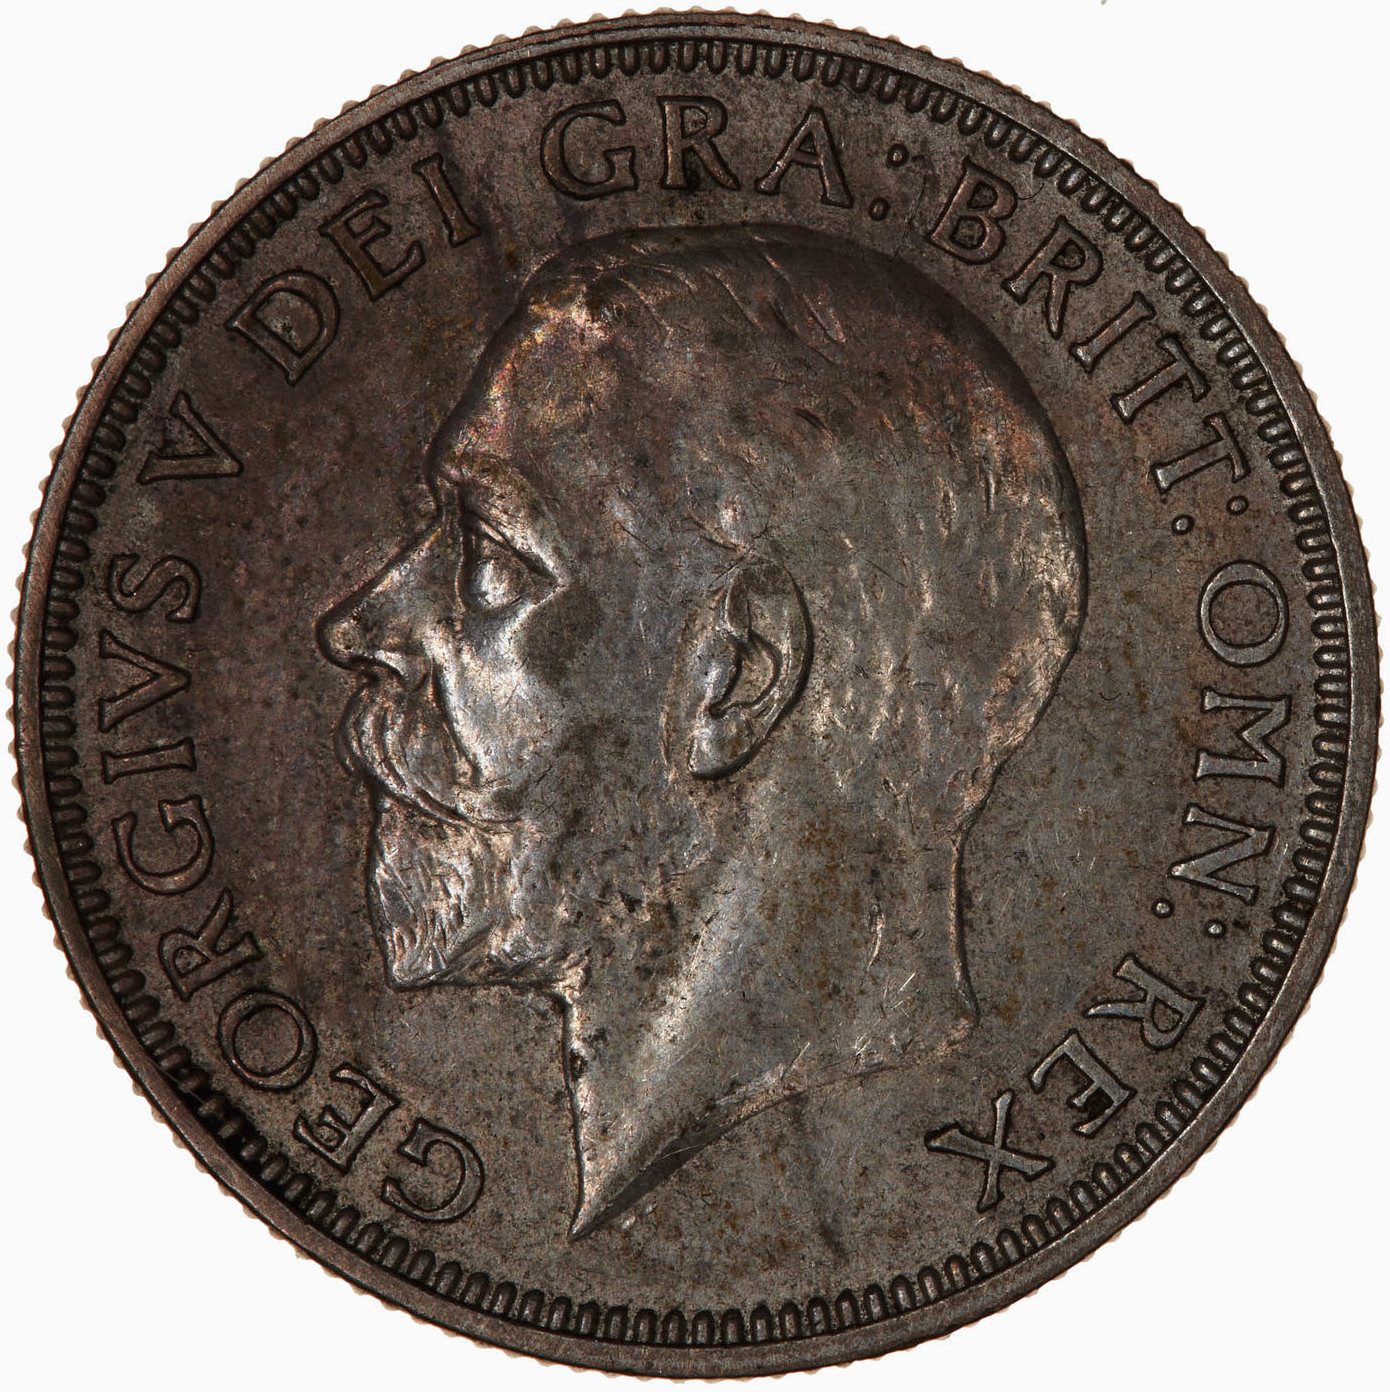 Shilling: Photo Coin - Shilling, George V, Great Britain, 1926